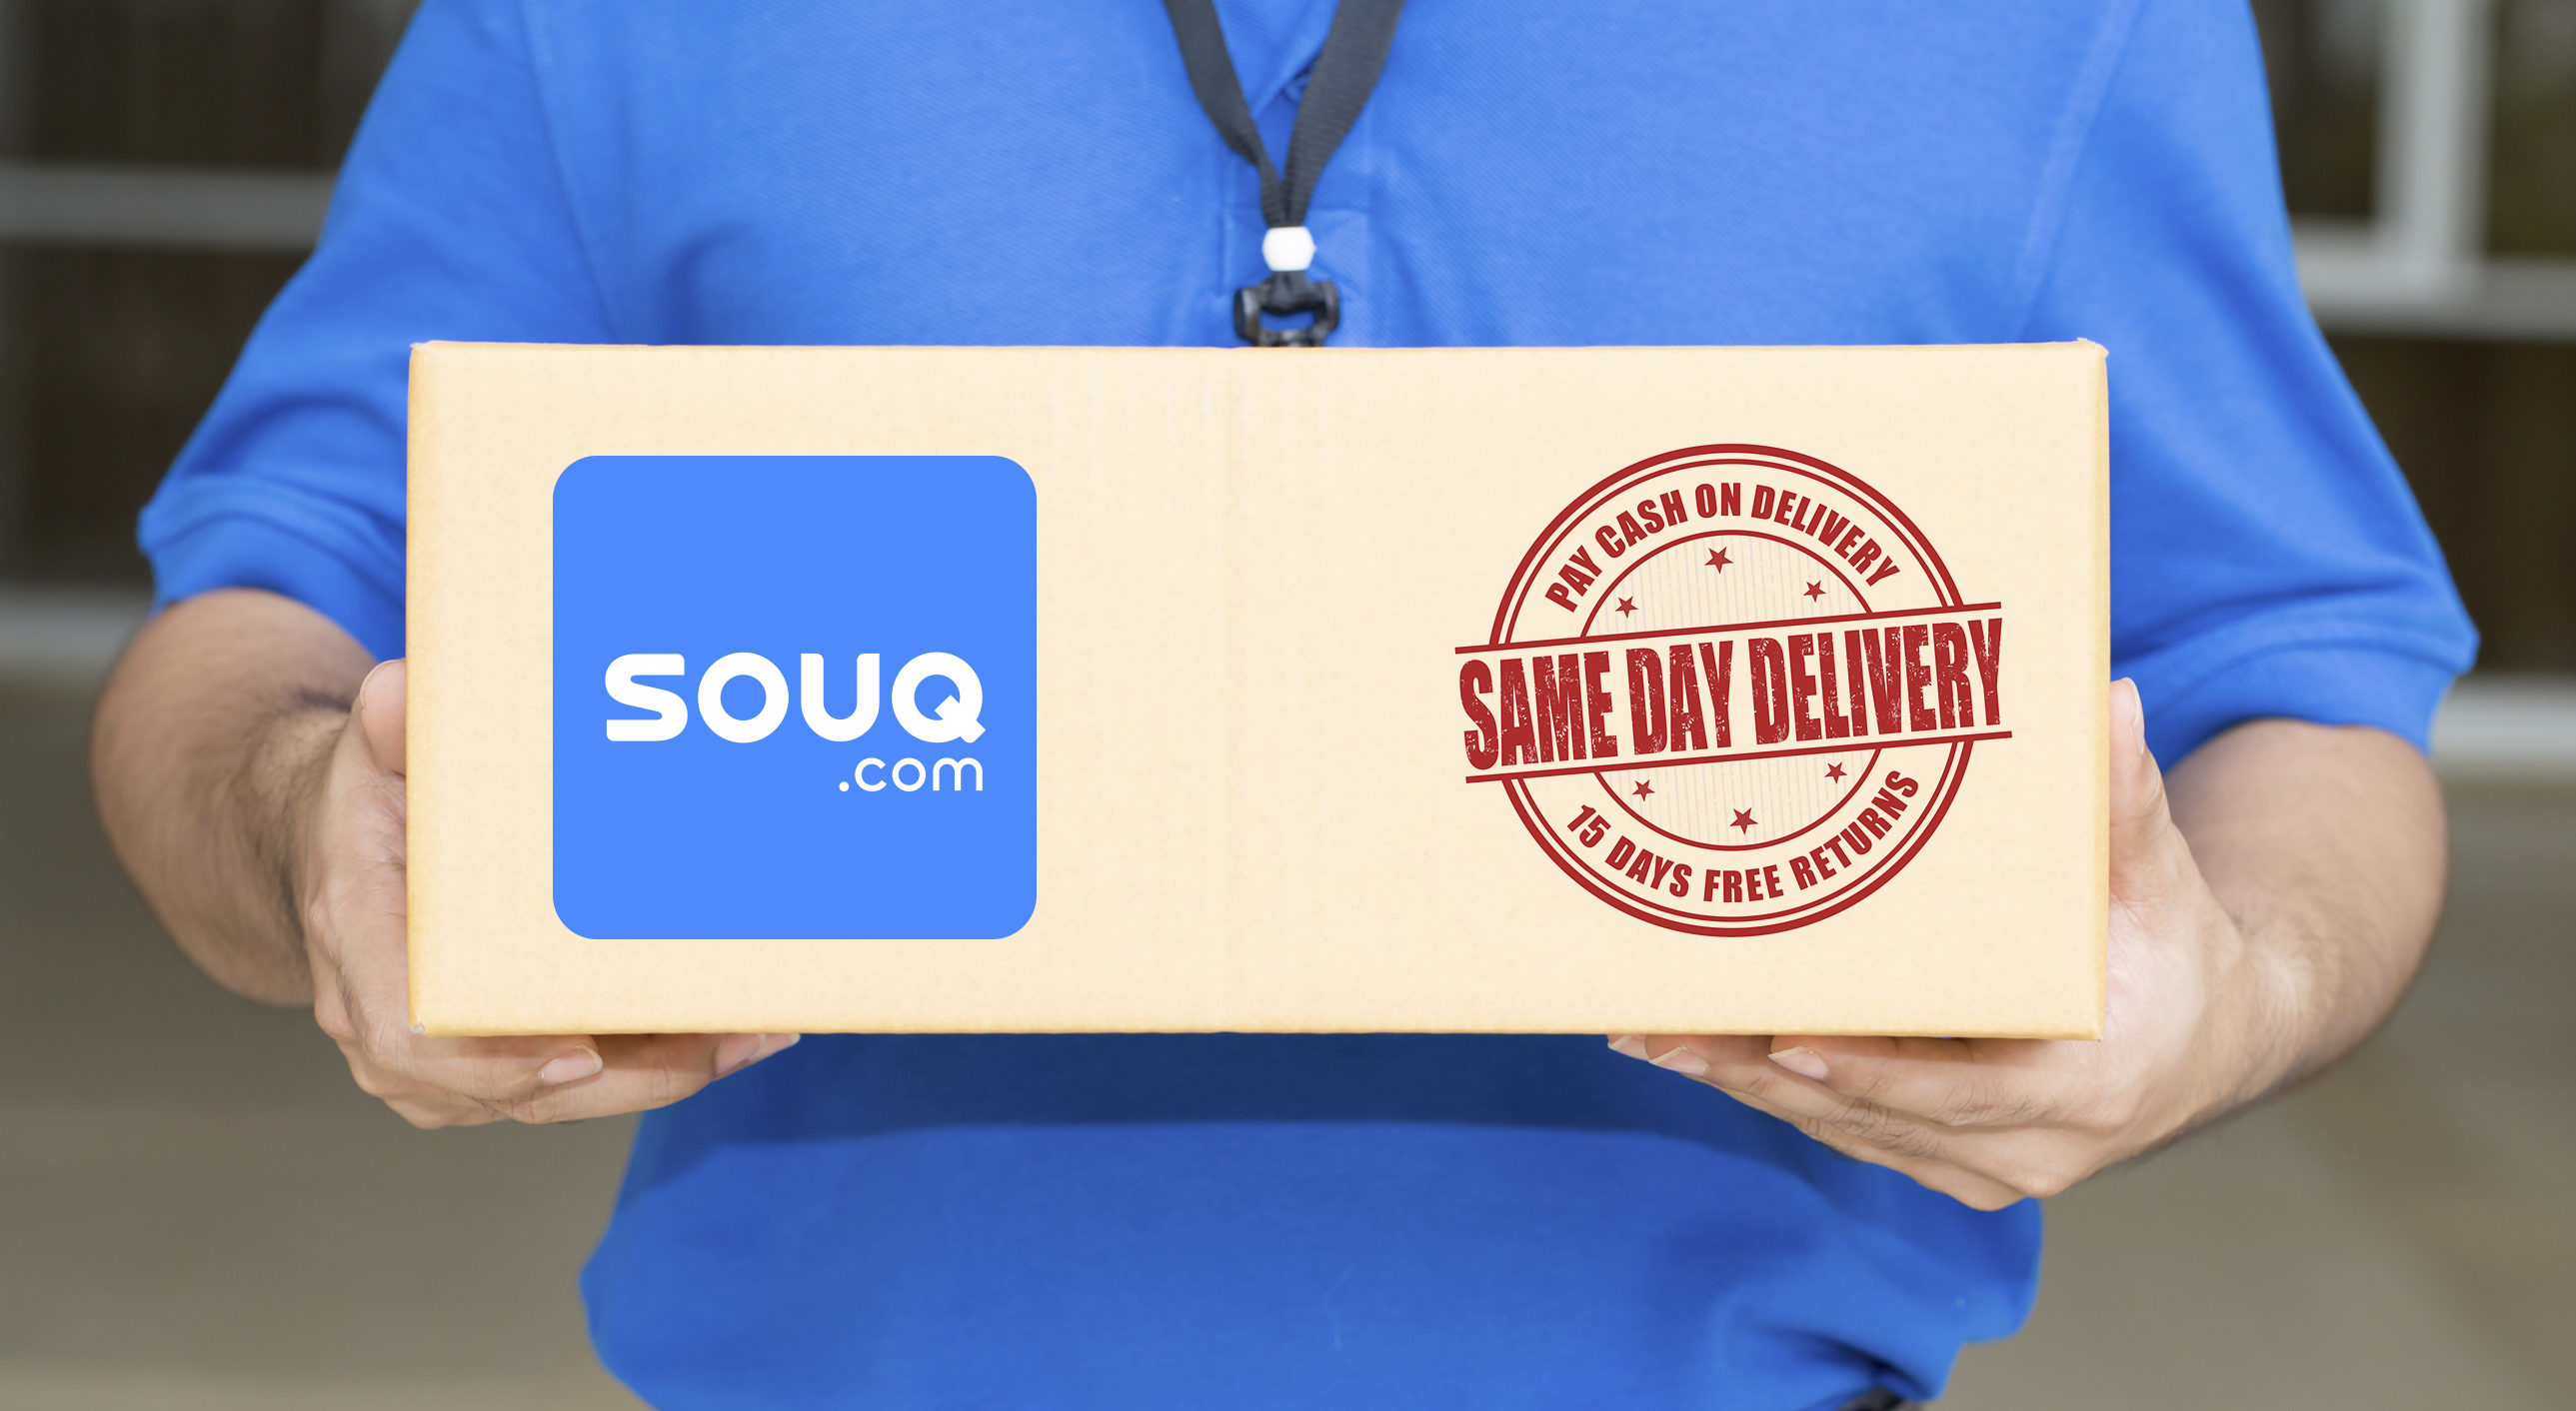 Souq com announces same-day delivery service - Future of